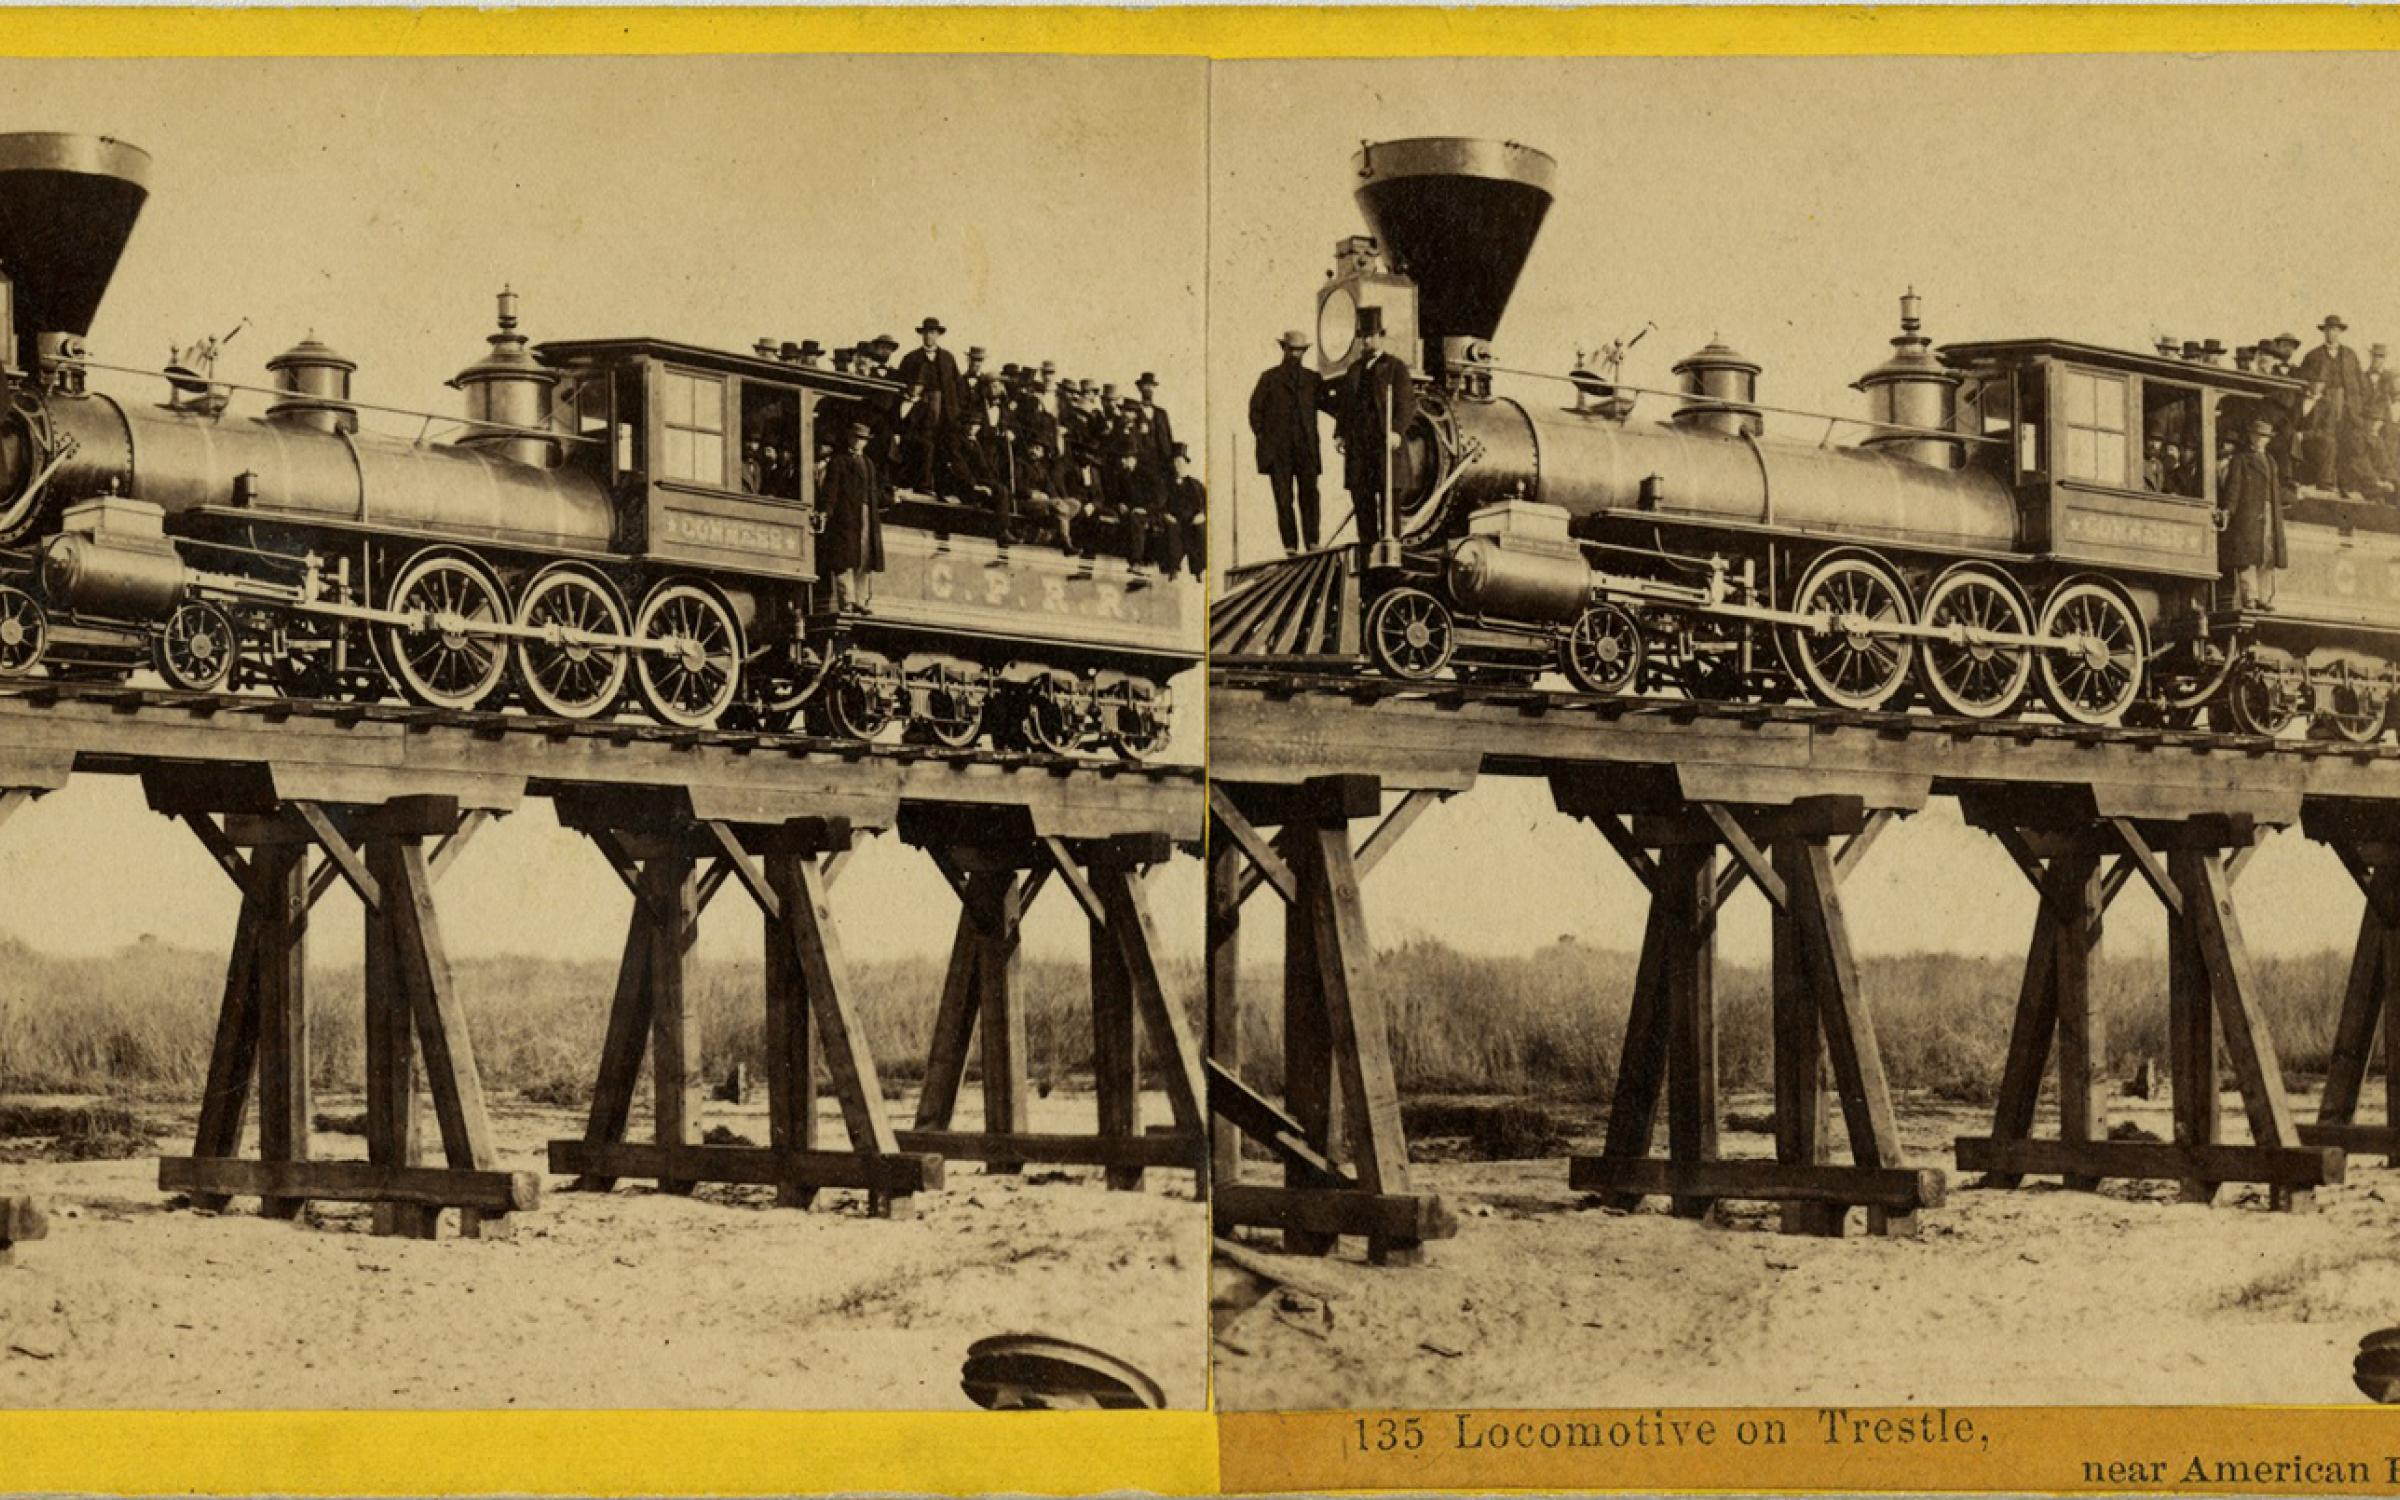 Alfred A. Hart (American, 1816–1908), Locomotive on Trestle, near American River, 1865, albumen stereograph, courtesy Union Pacific Railroad Museum.